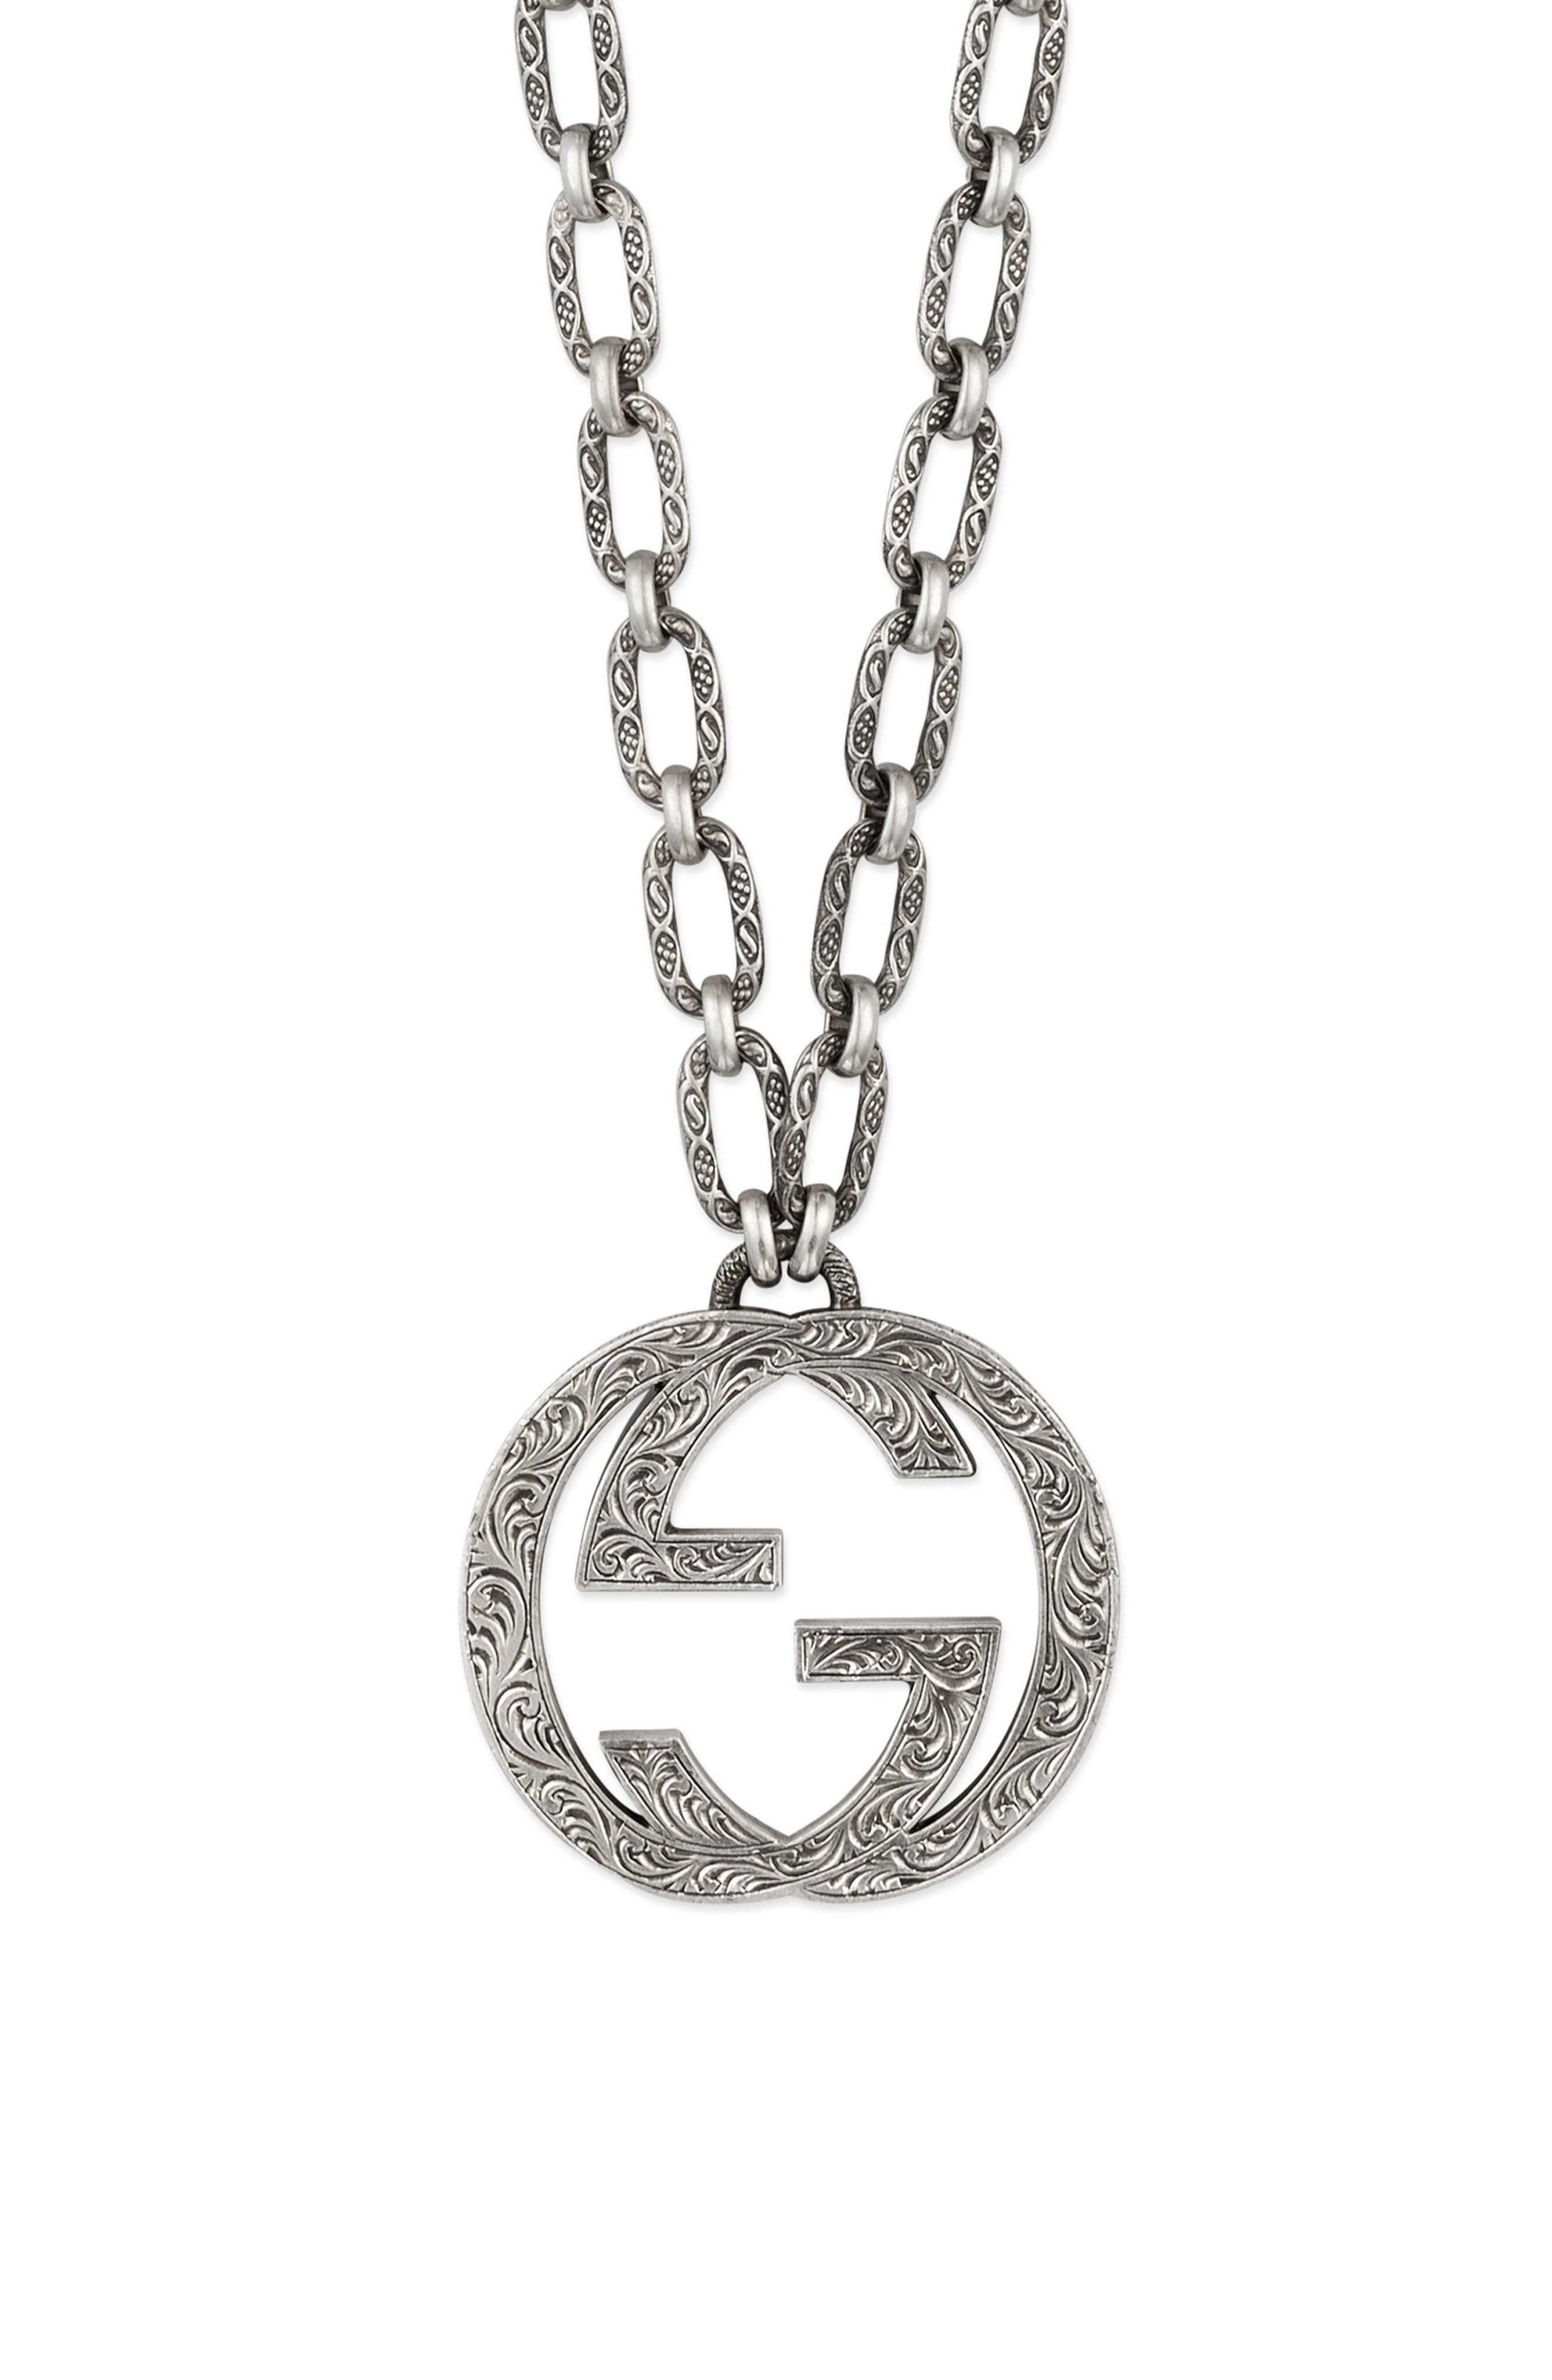 GG Logo Pendant Necklace,                         Main,                         color, STERLING SILVER